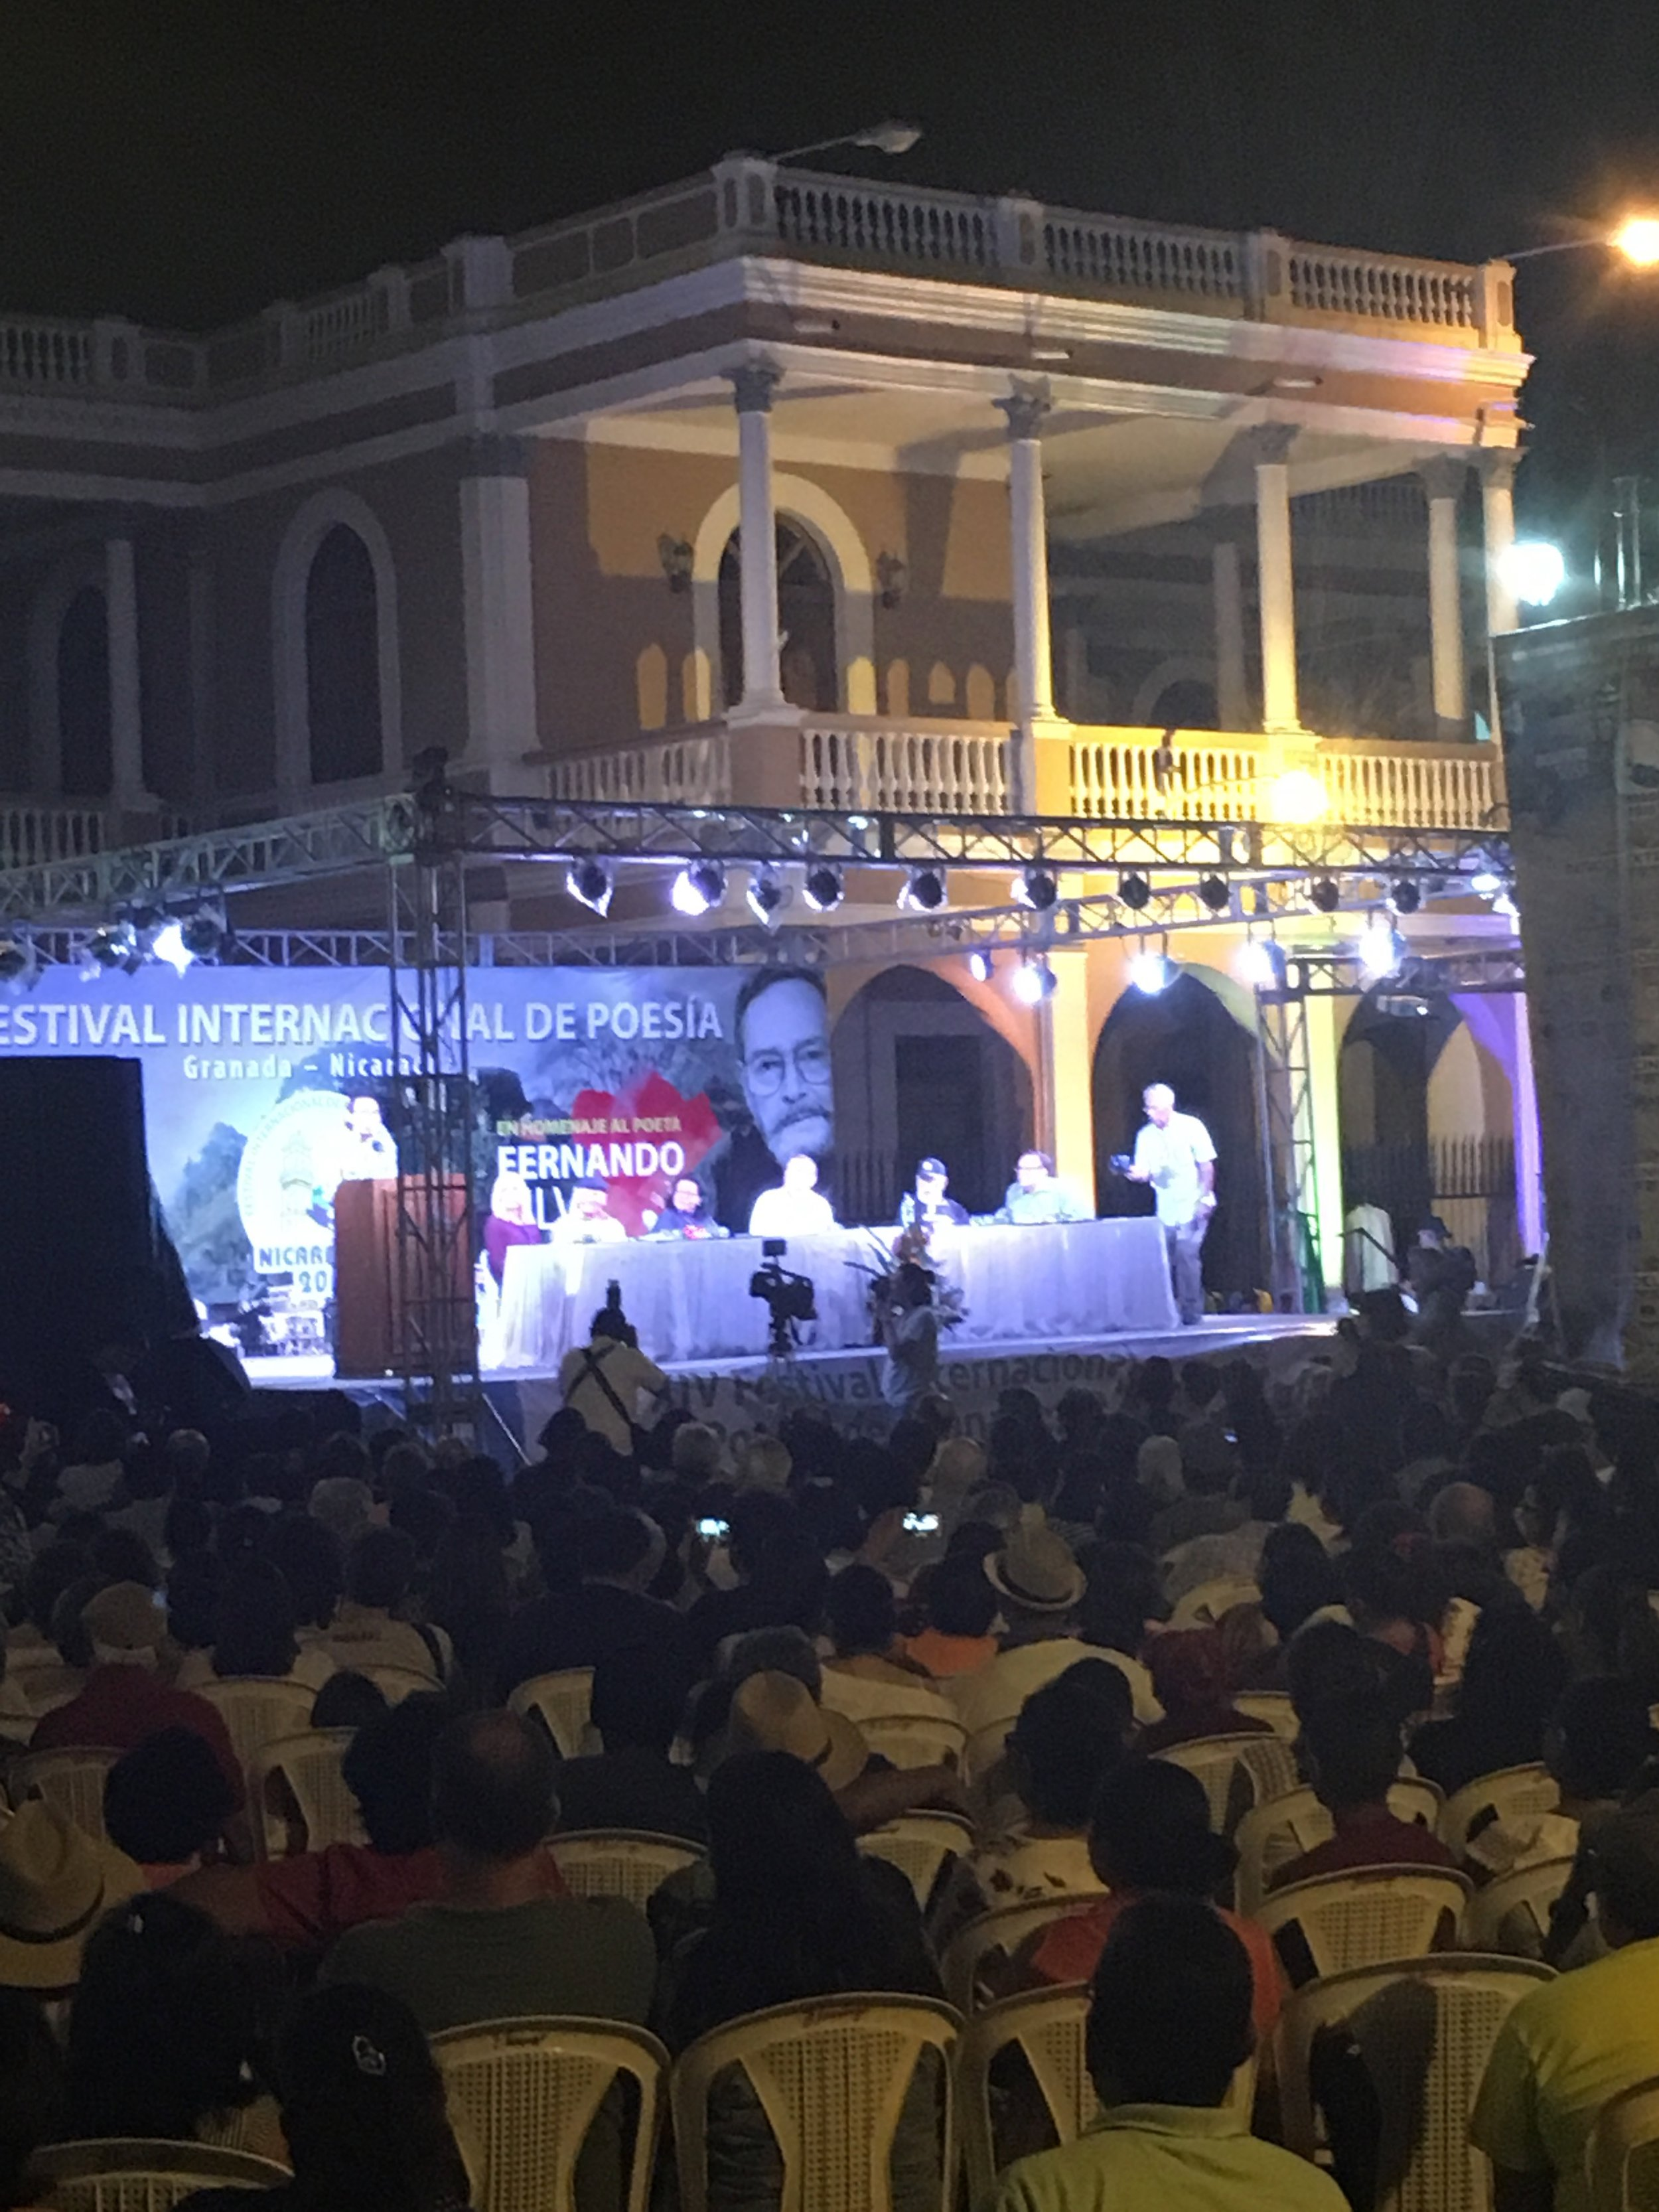 The poetry festival held every February